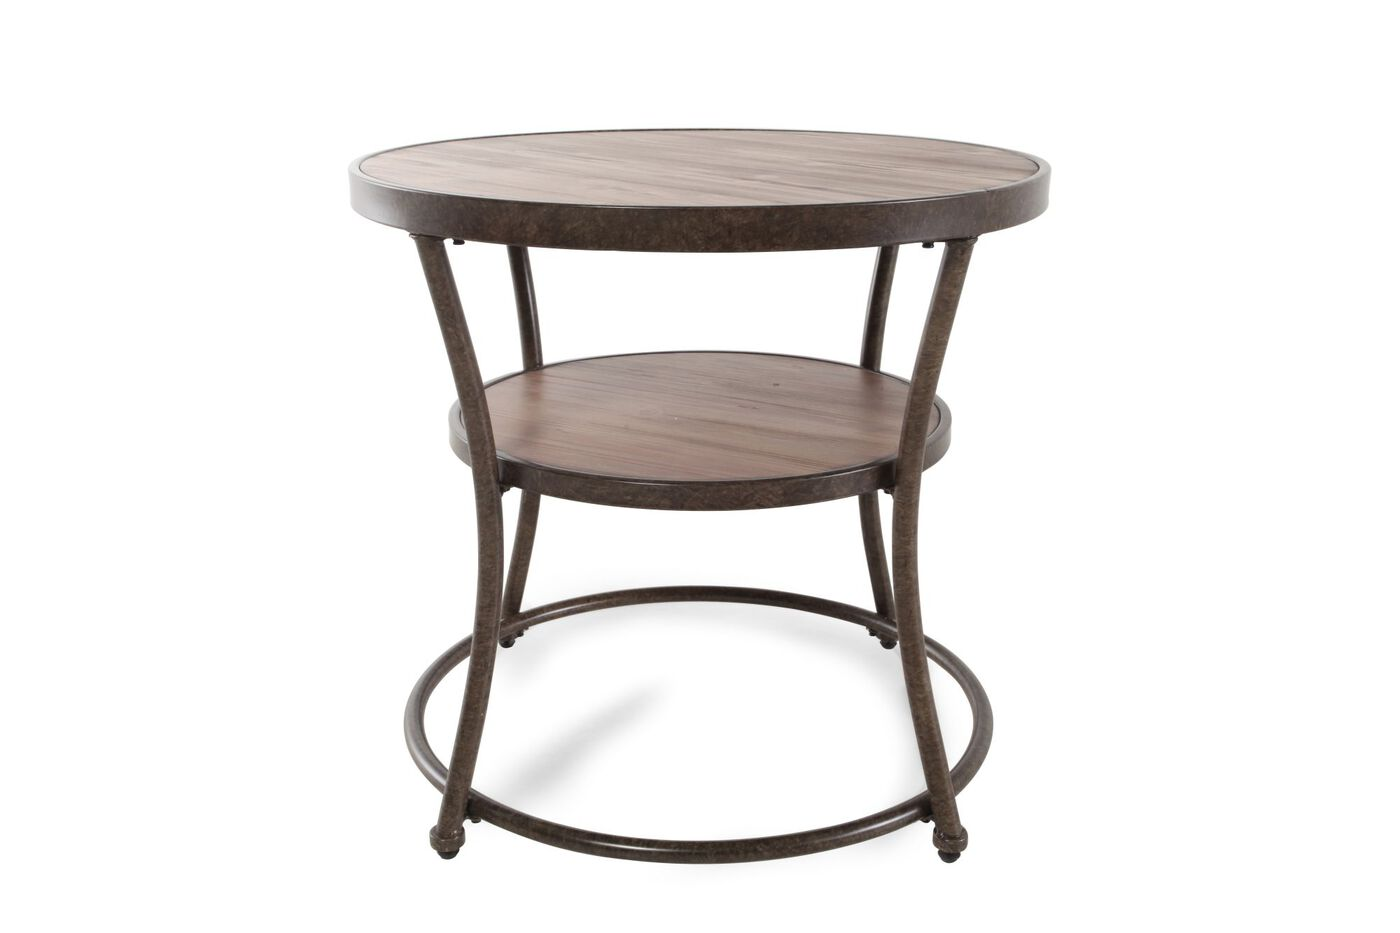 Small Round Rustic Side Tables: Distressed Round Casual End Table In Rustic Pine